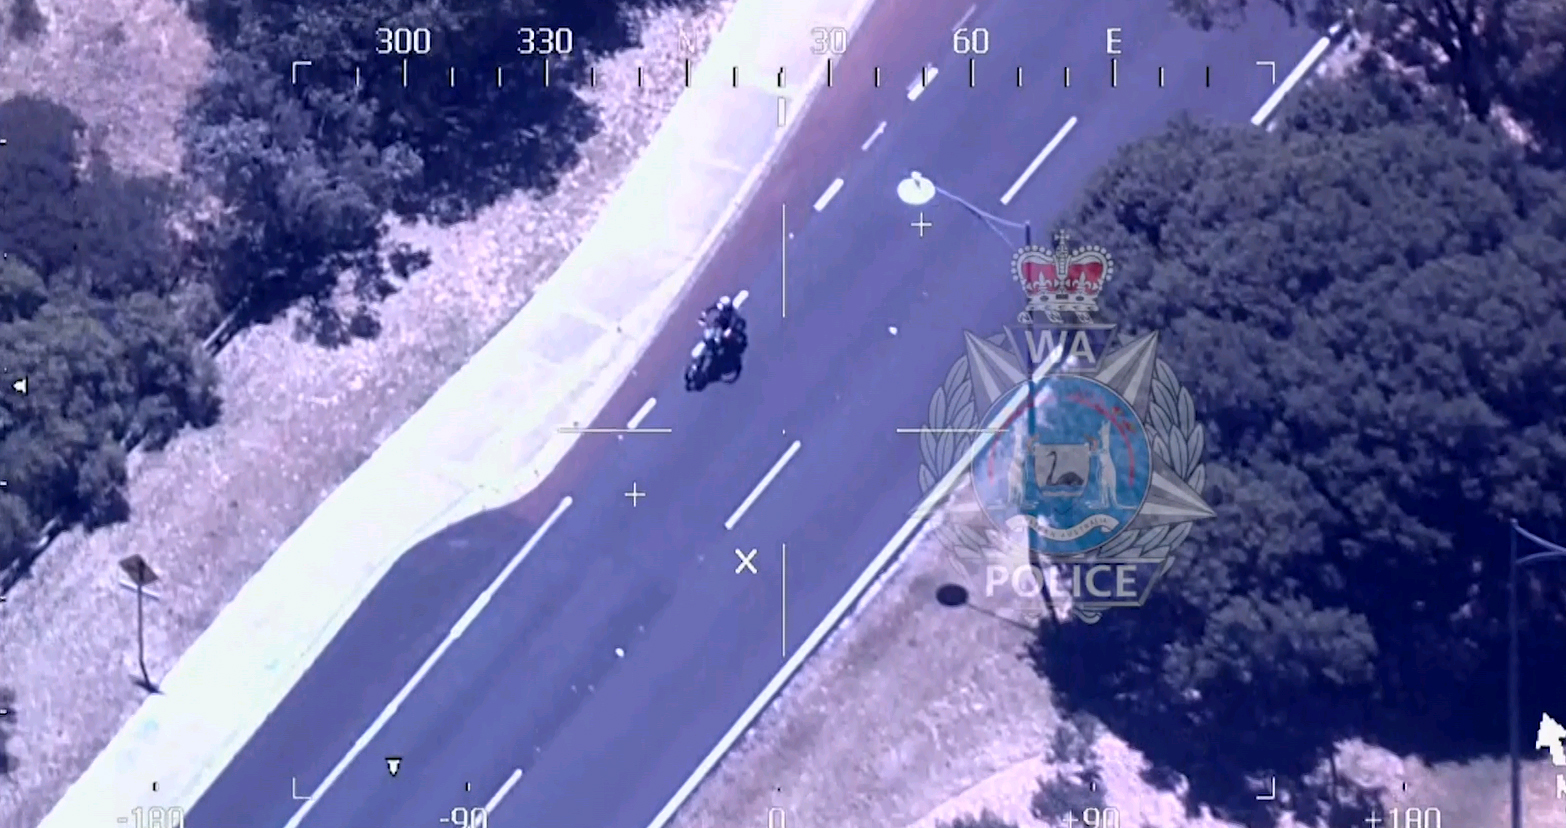 Chase drama: POLAIR's eye in the sky helps police arrest Warnbro man